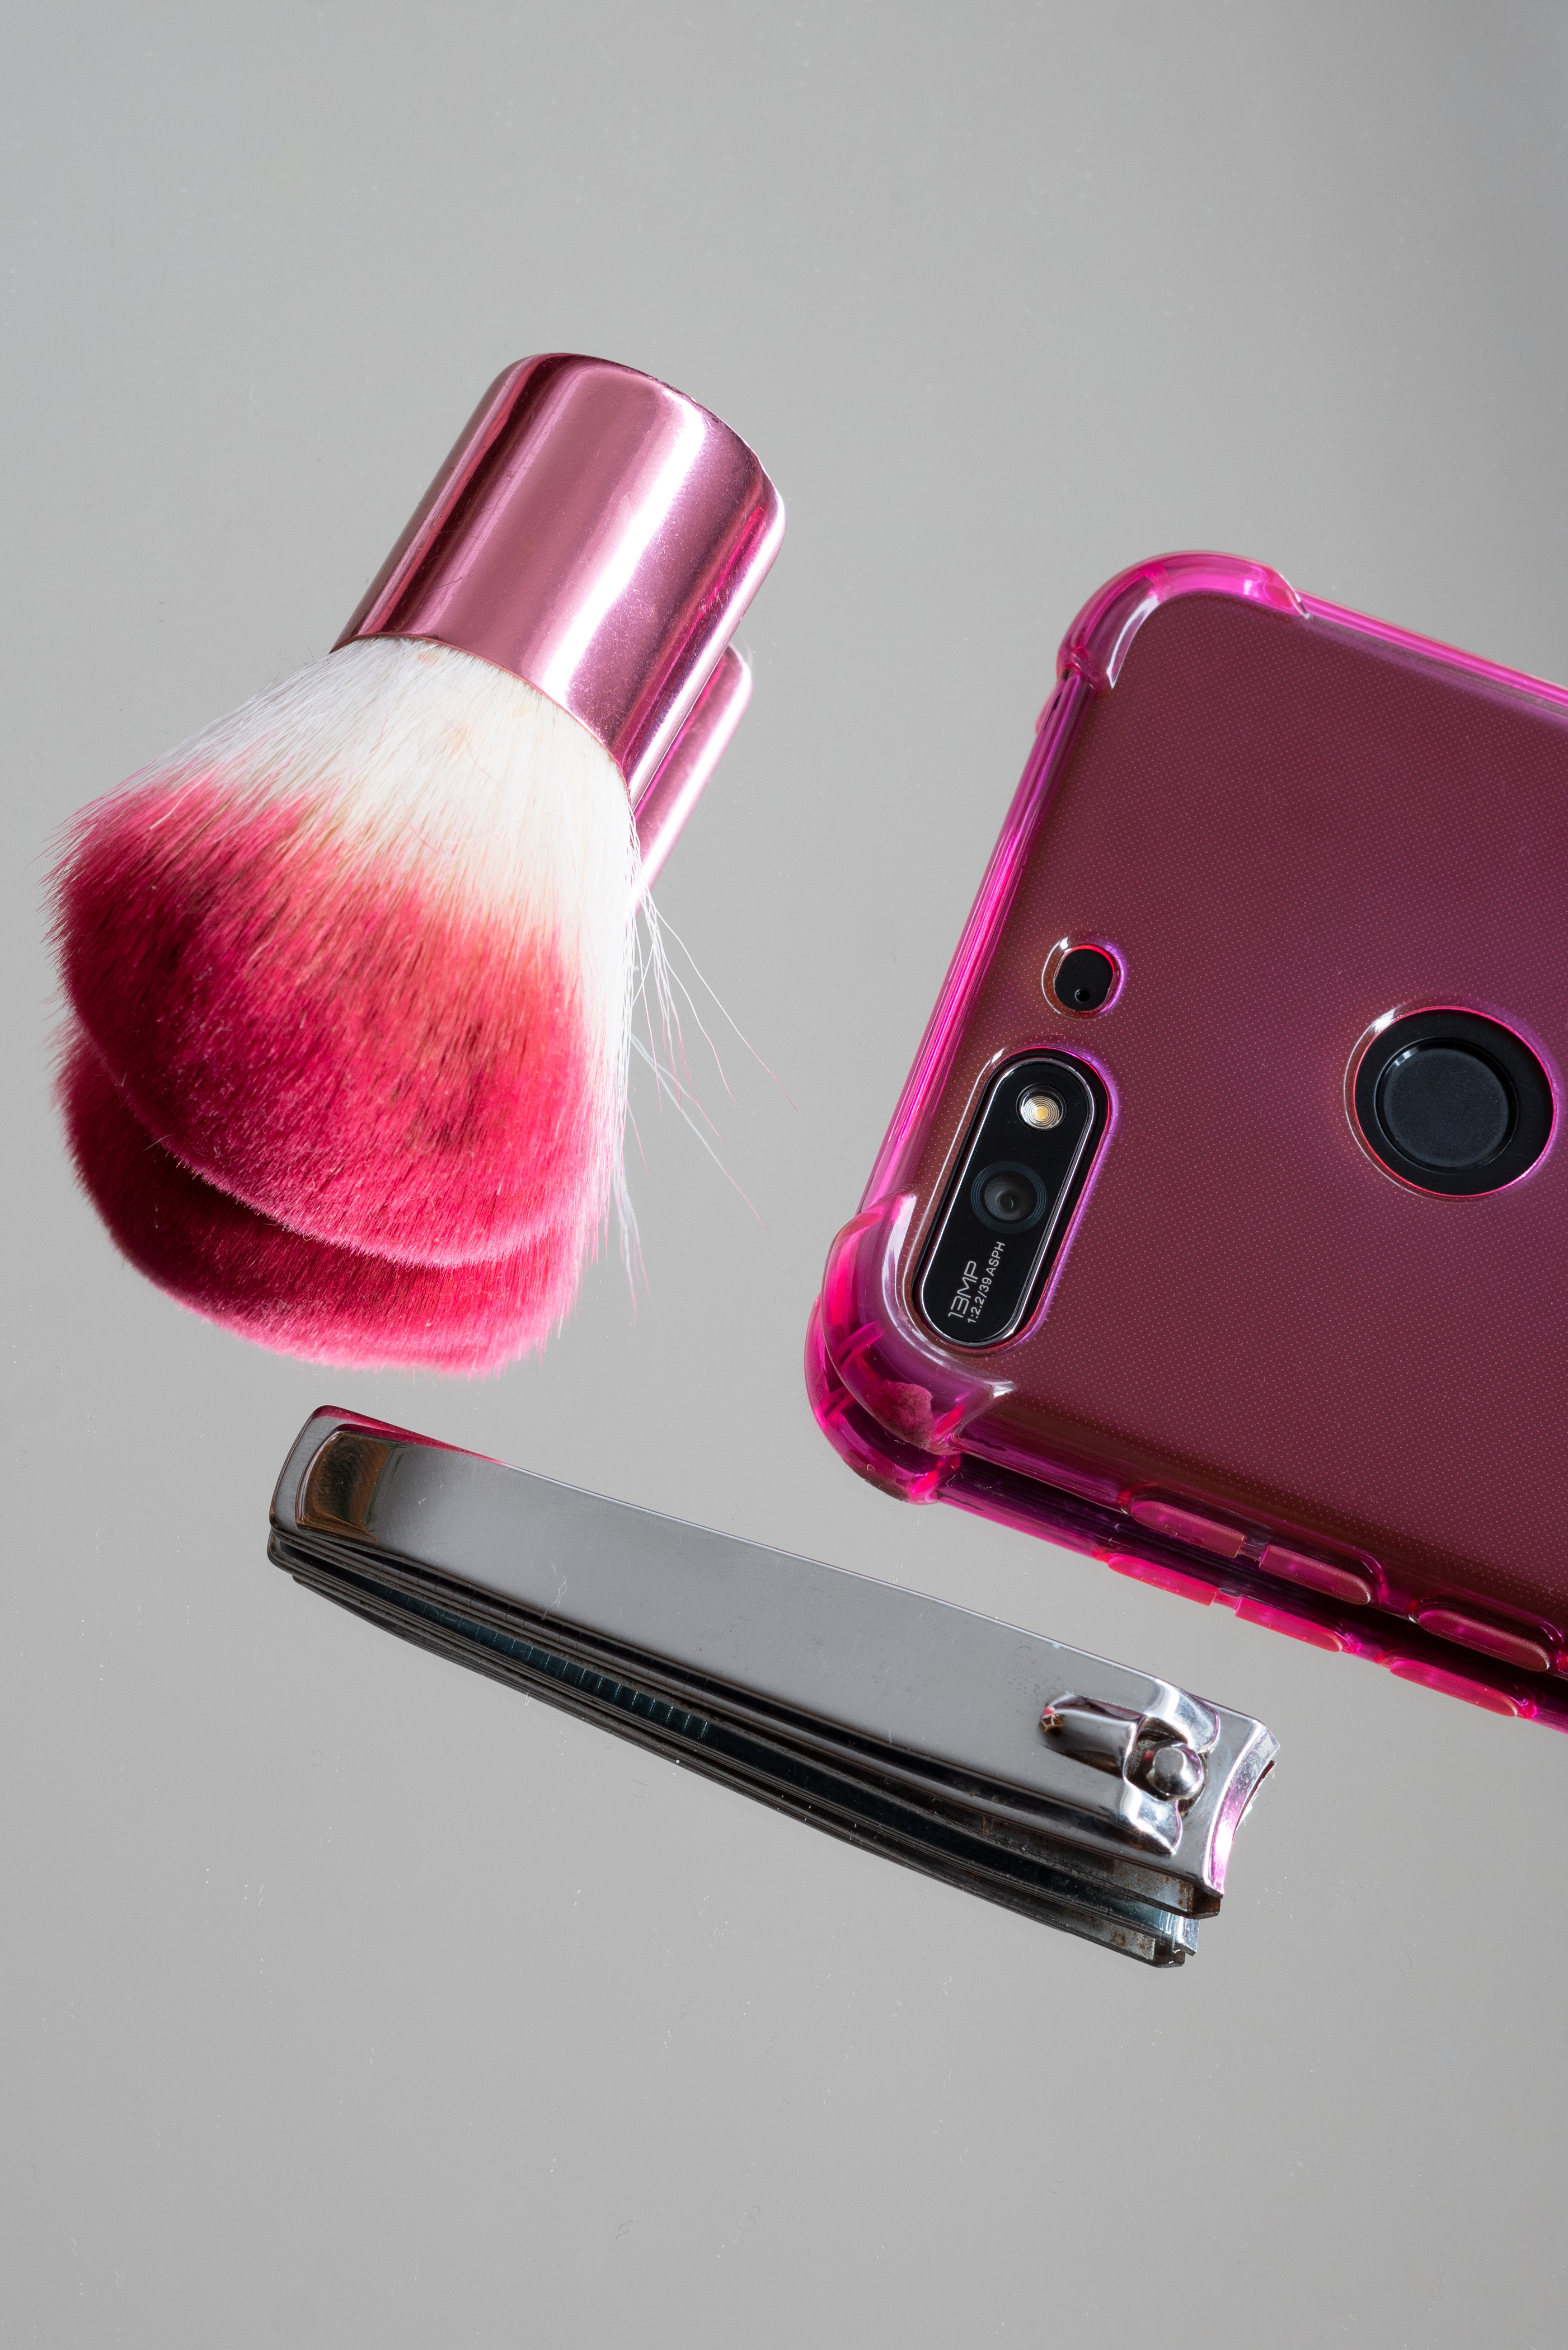 Pink Makeup Brush And Stainless Steel Nail Clipper